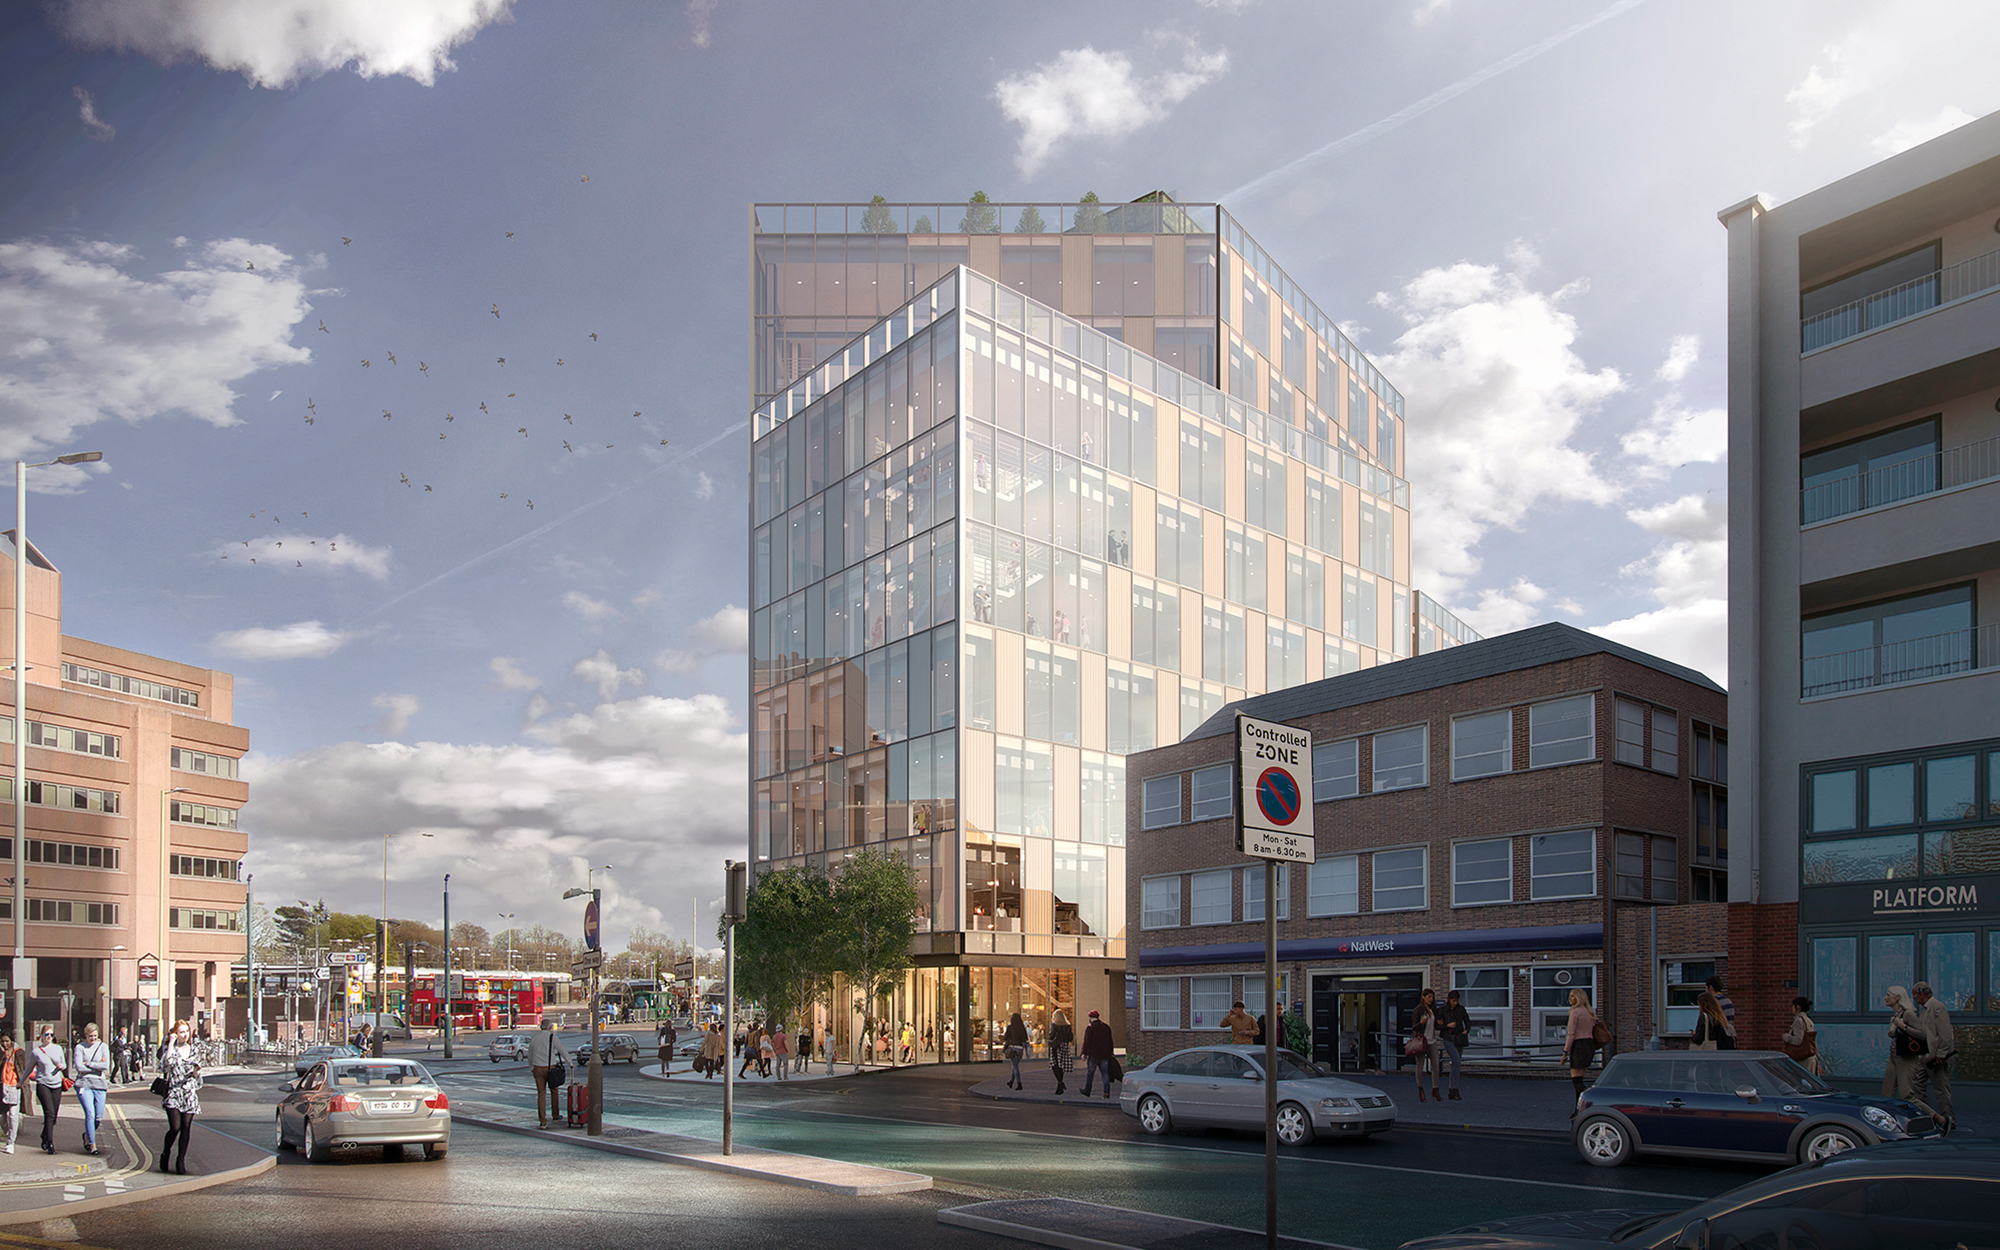 Future townscape: View of TJX Europe Head Office from Clarendon Road, Watford (CGI)